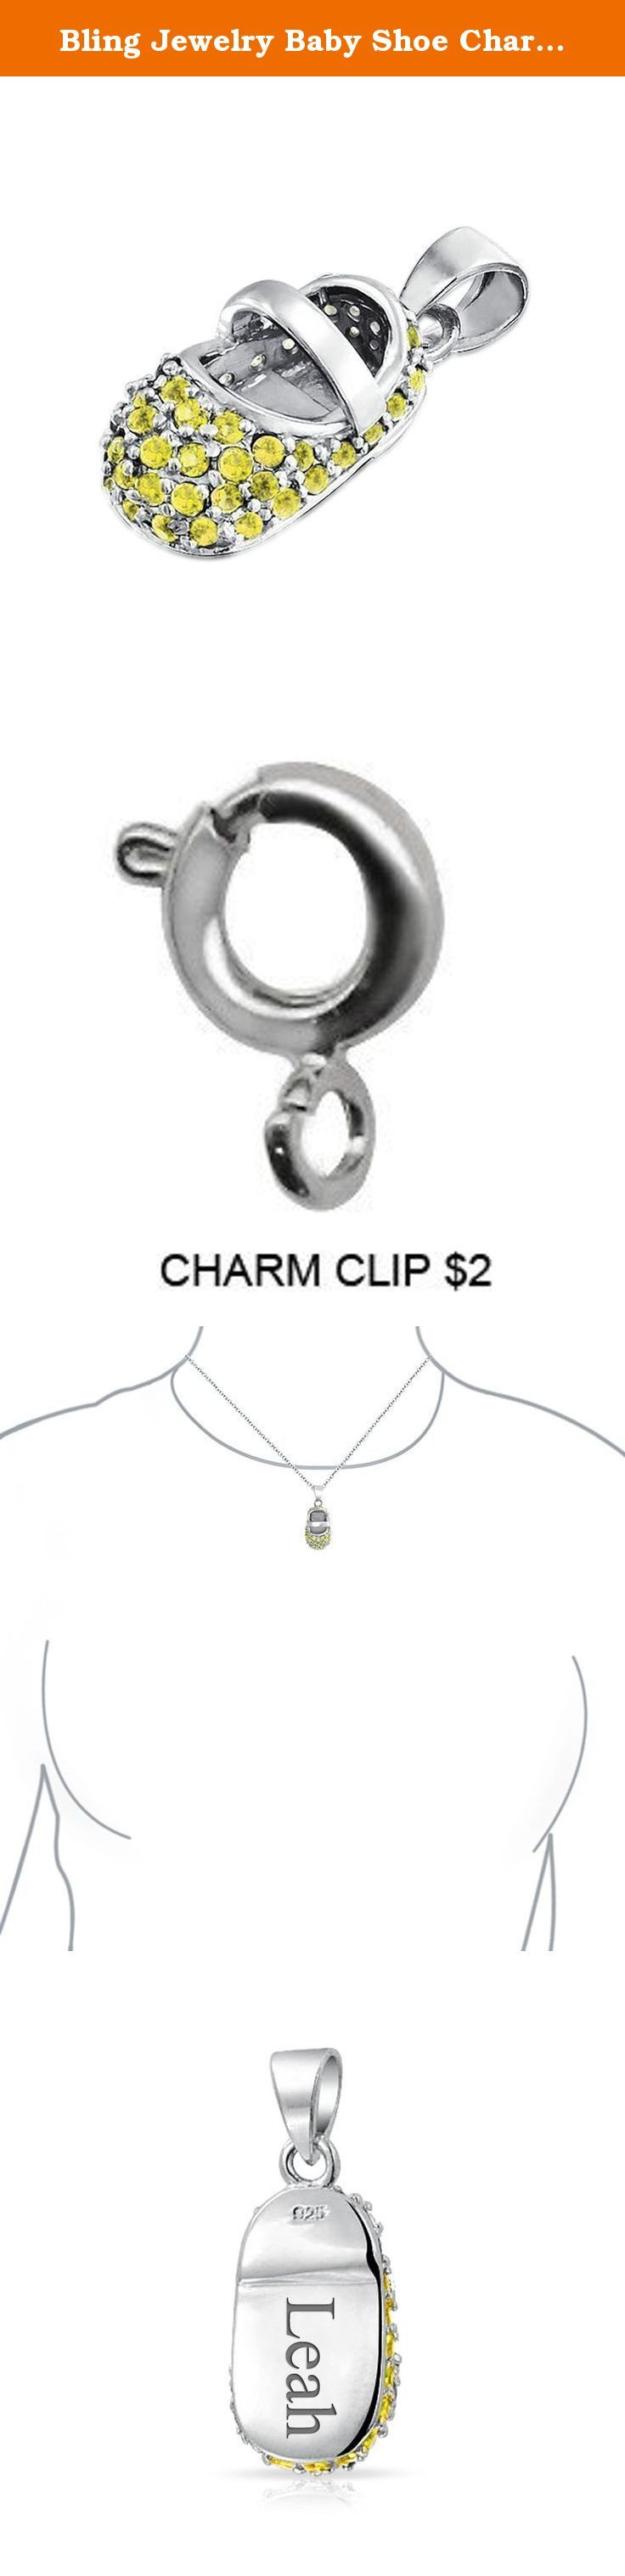 Bling Jewelry Baby Shoe Charm 925 Silver Simulated Citrine CZ. This pretty little baby shoe pendant makes the perfect gift for a new or expectant mom. Made of rhodium plated 925 sterling silver, the baby shoe charm has a nice shine that will remain lustrous for years to come. Also encrusted with Simulated Yellow Topaz cubic zirconia stones, this piece is an excellent piece for a November baby. Although popular for baby showers, you can give baby shoe pendants as gifts on any celebration…